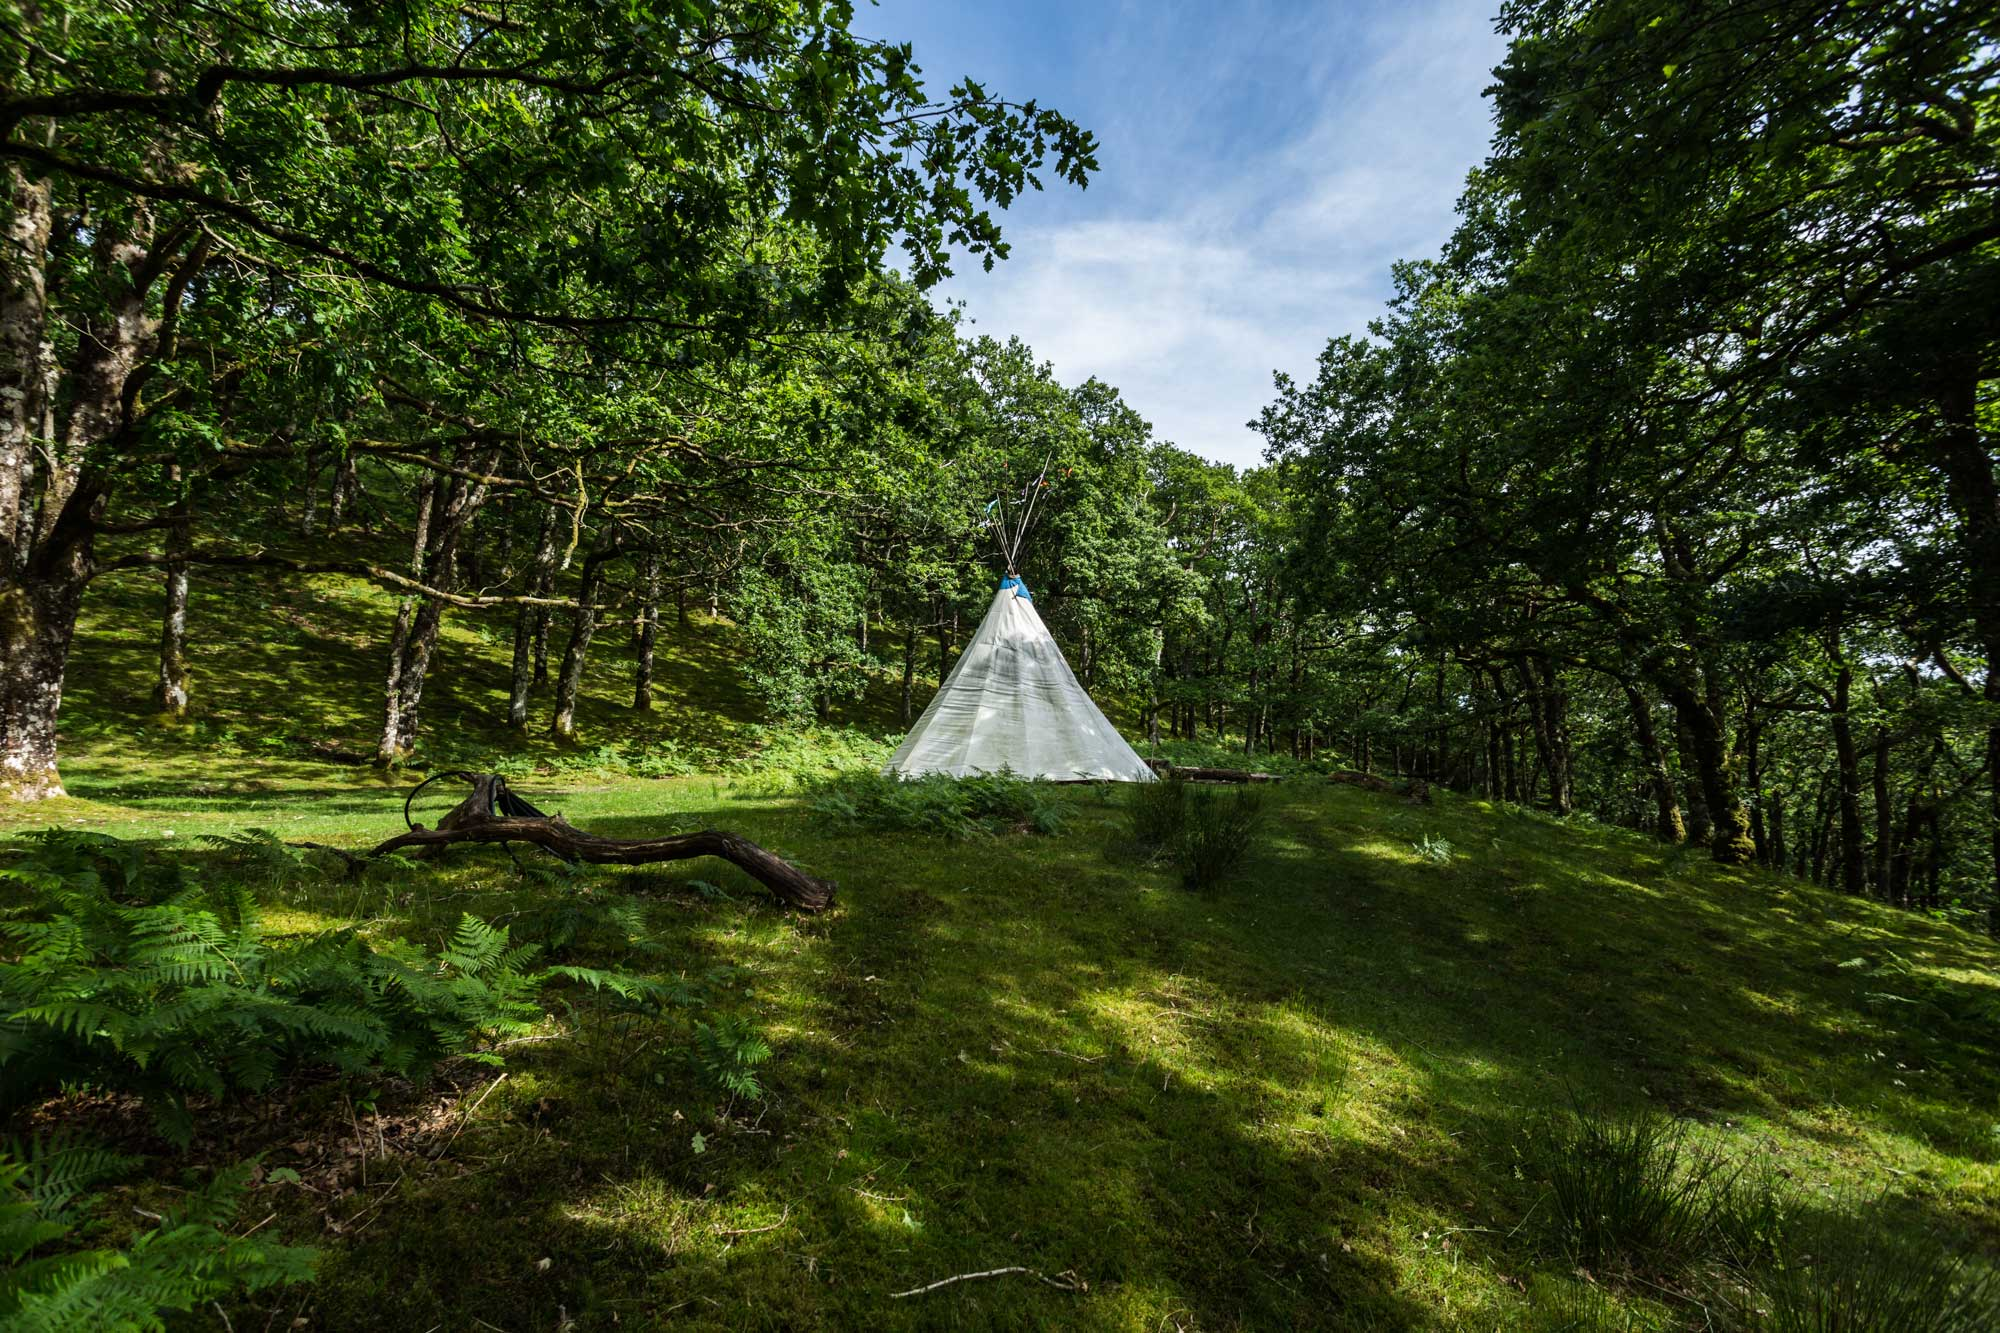 Tipi in a clearing in an old oak forest